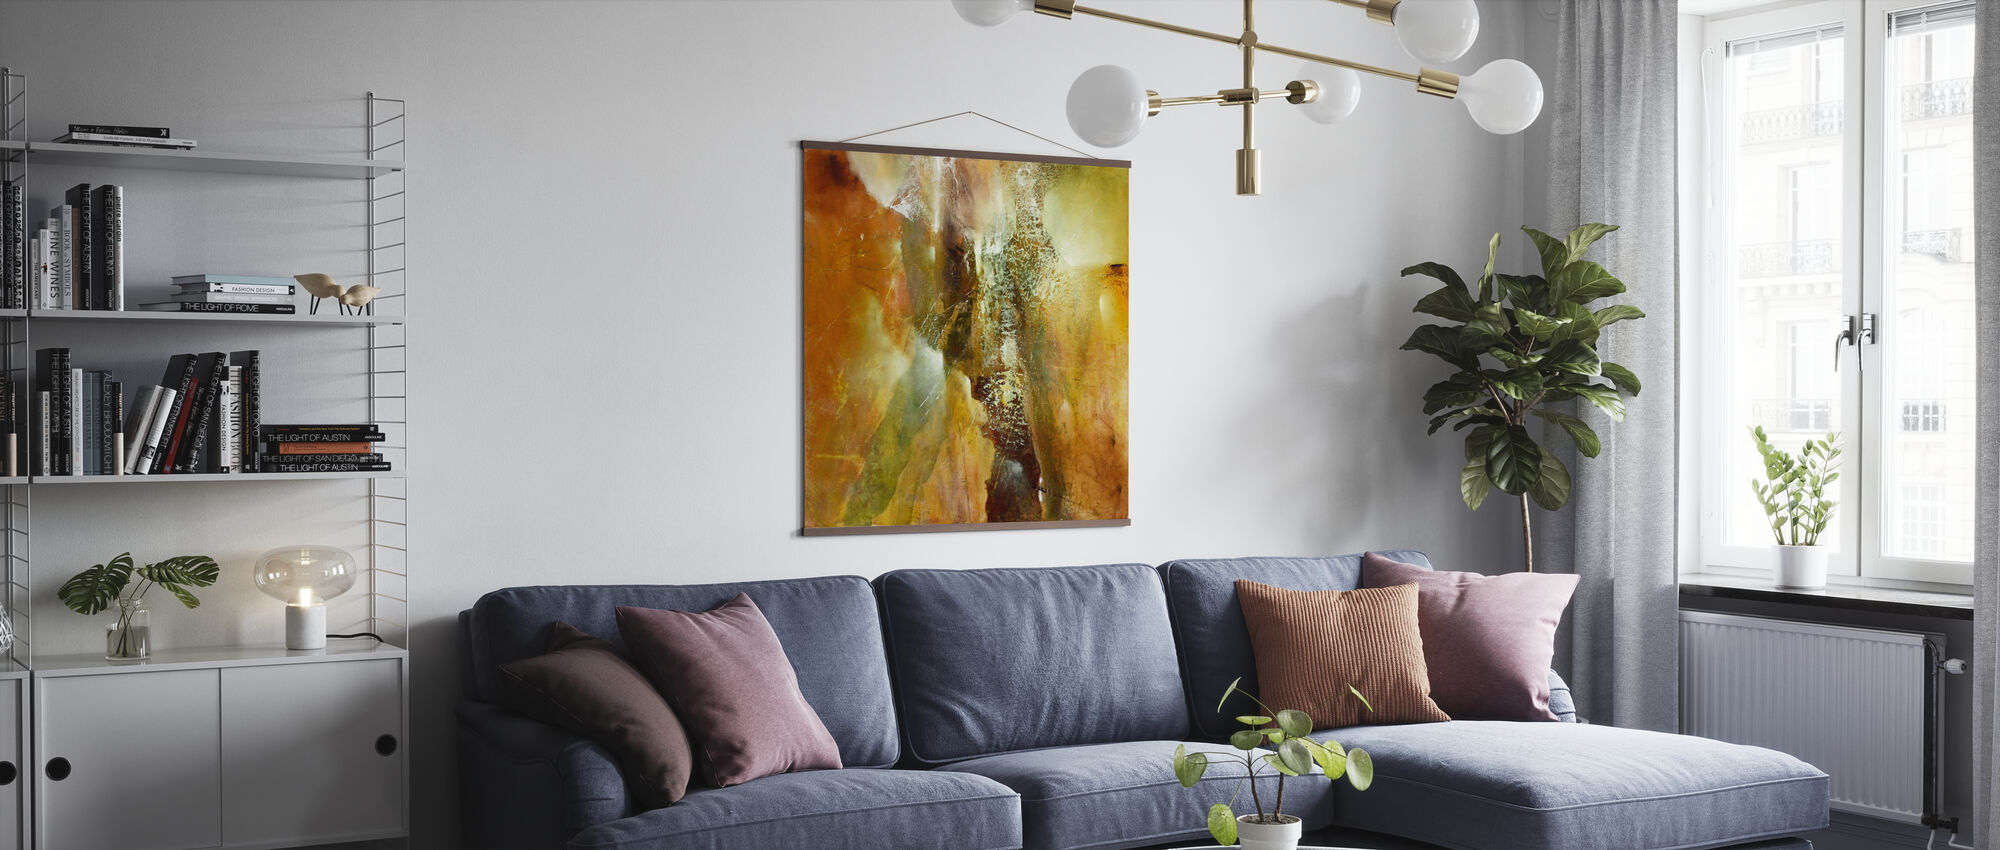 Abstract Composition - Poster - Living Room